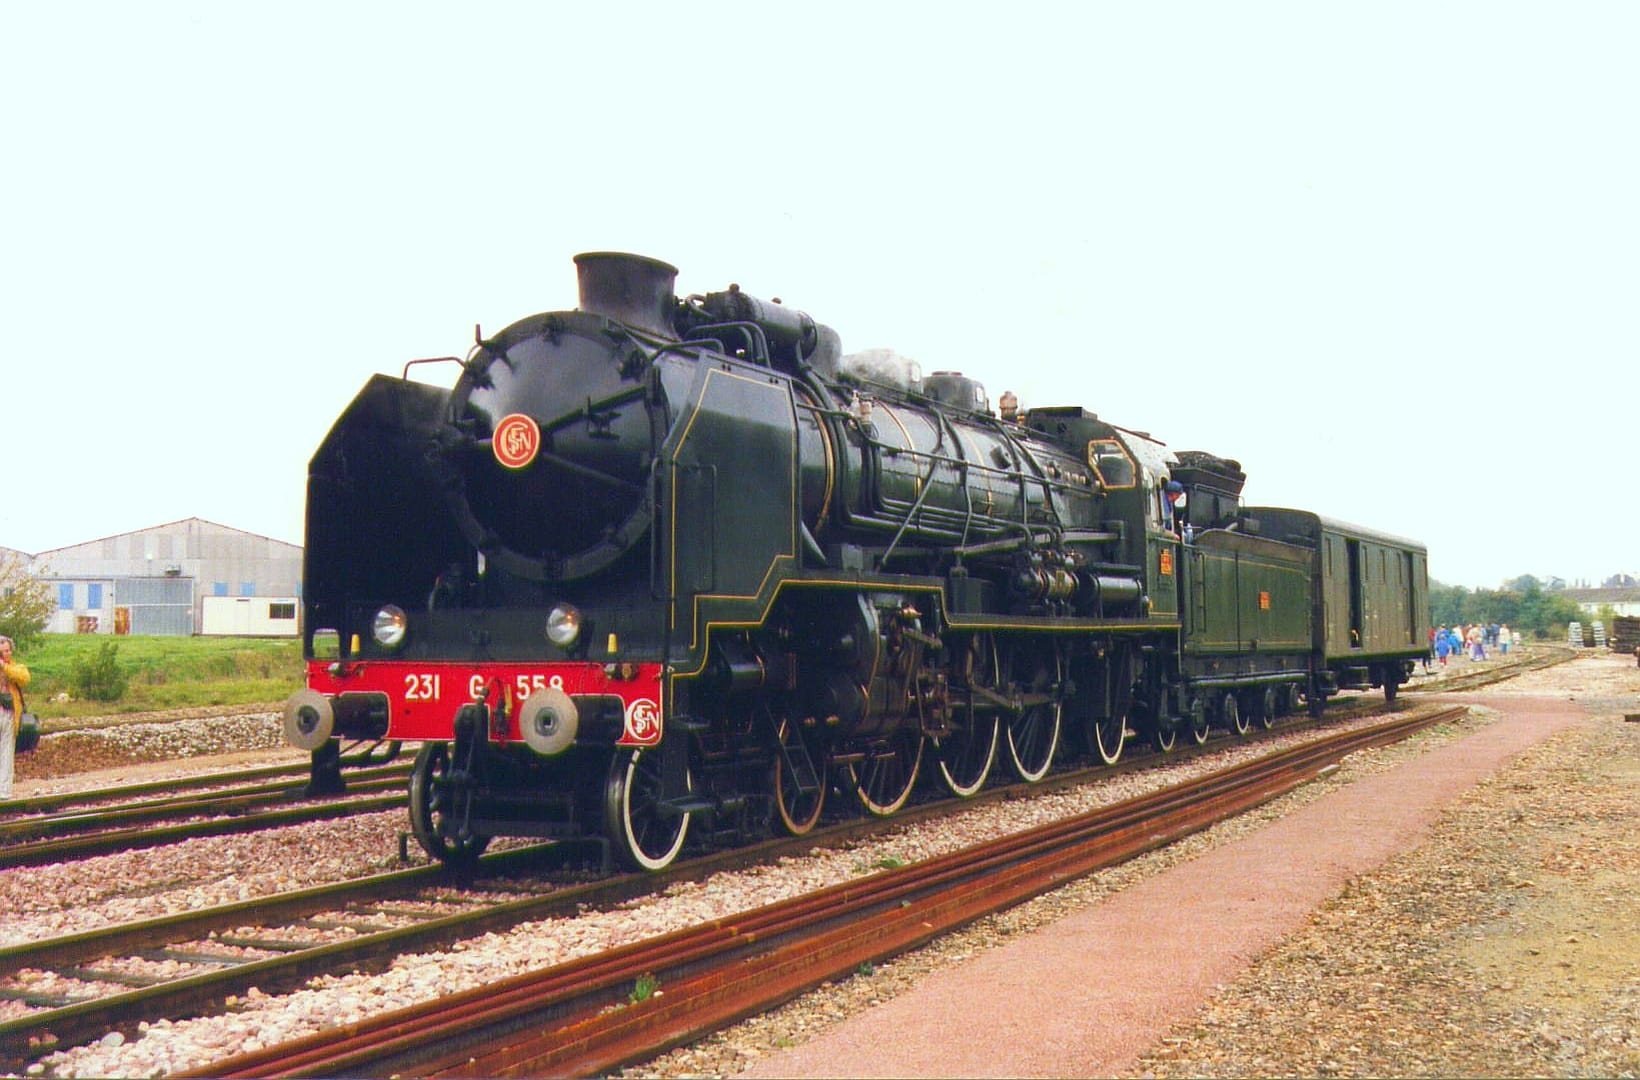 Locomotive à Vapeur Pacific 231 G.